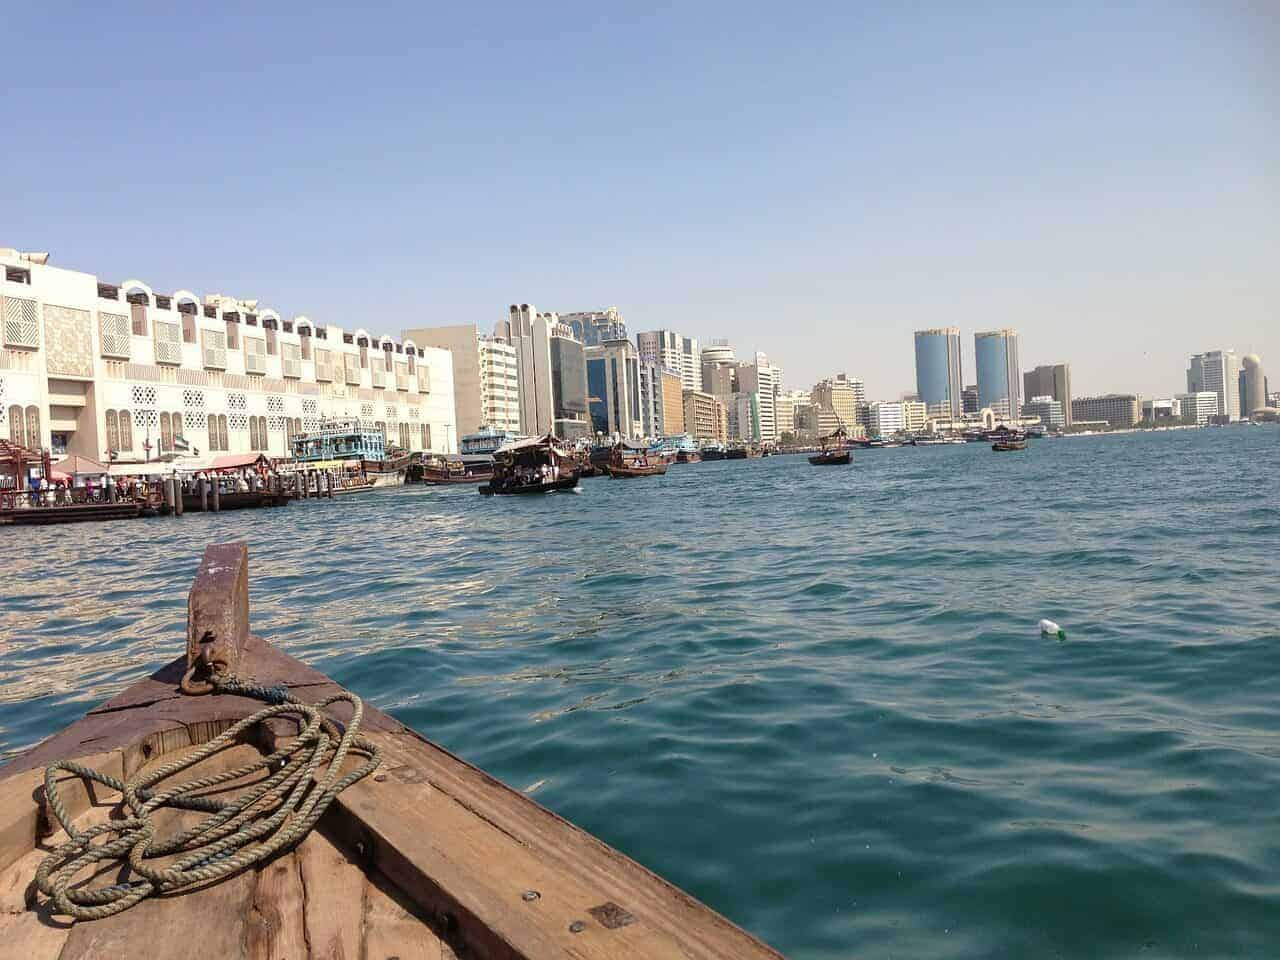 Dhow Boat on Dubai Creek